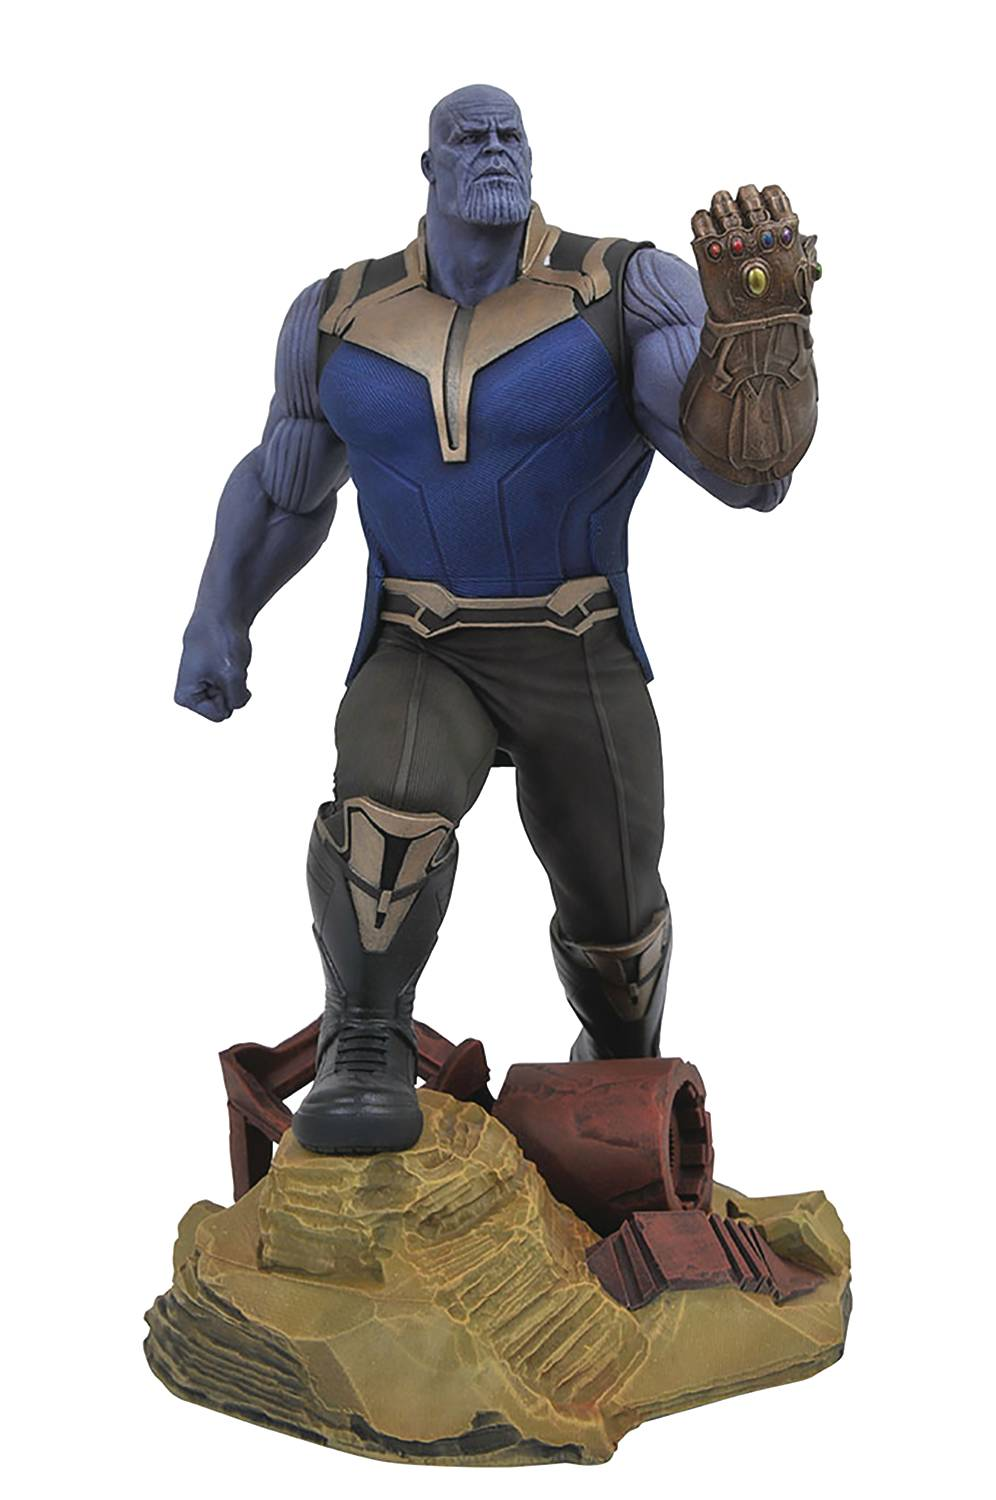 Diamond Marvel Gallery Avengers Infinity War Thanos Statue